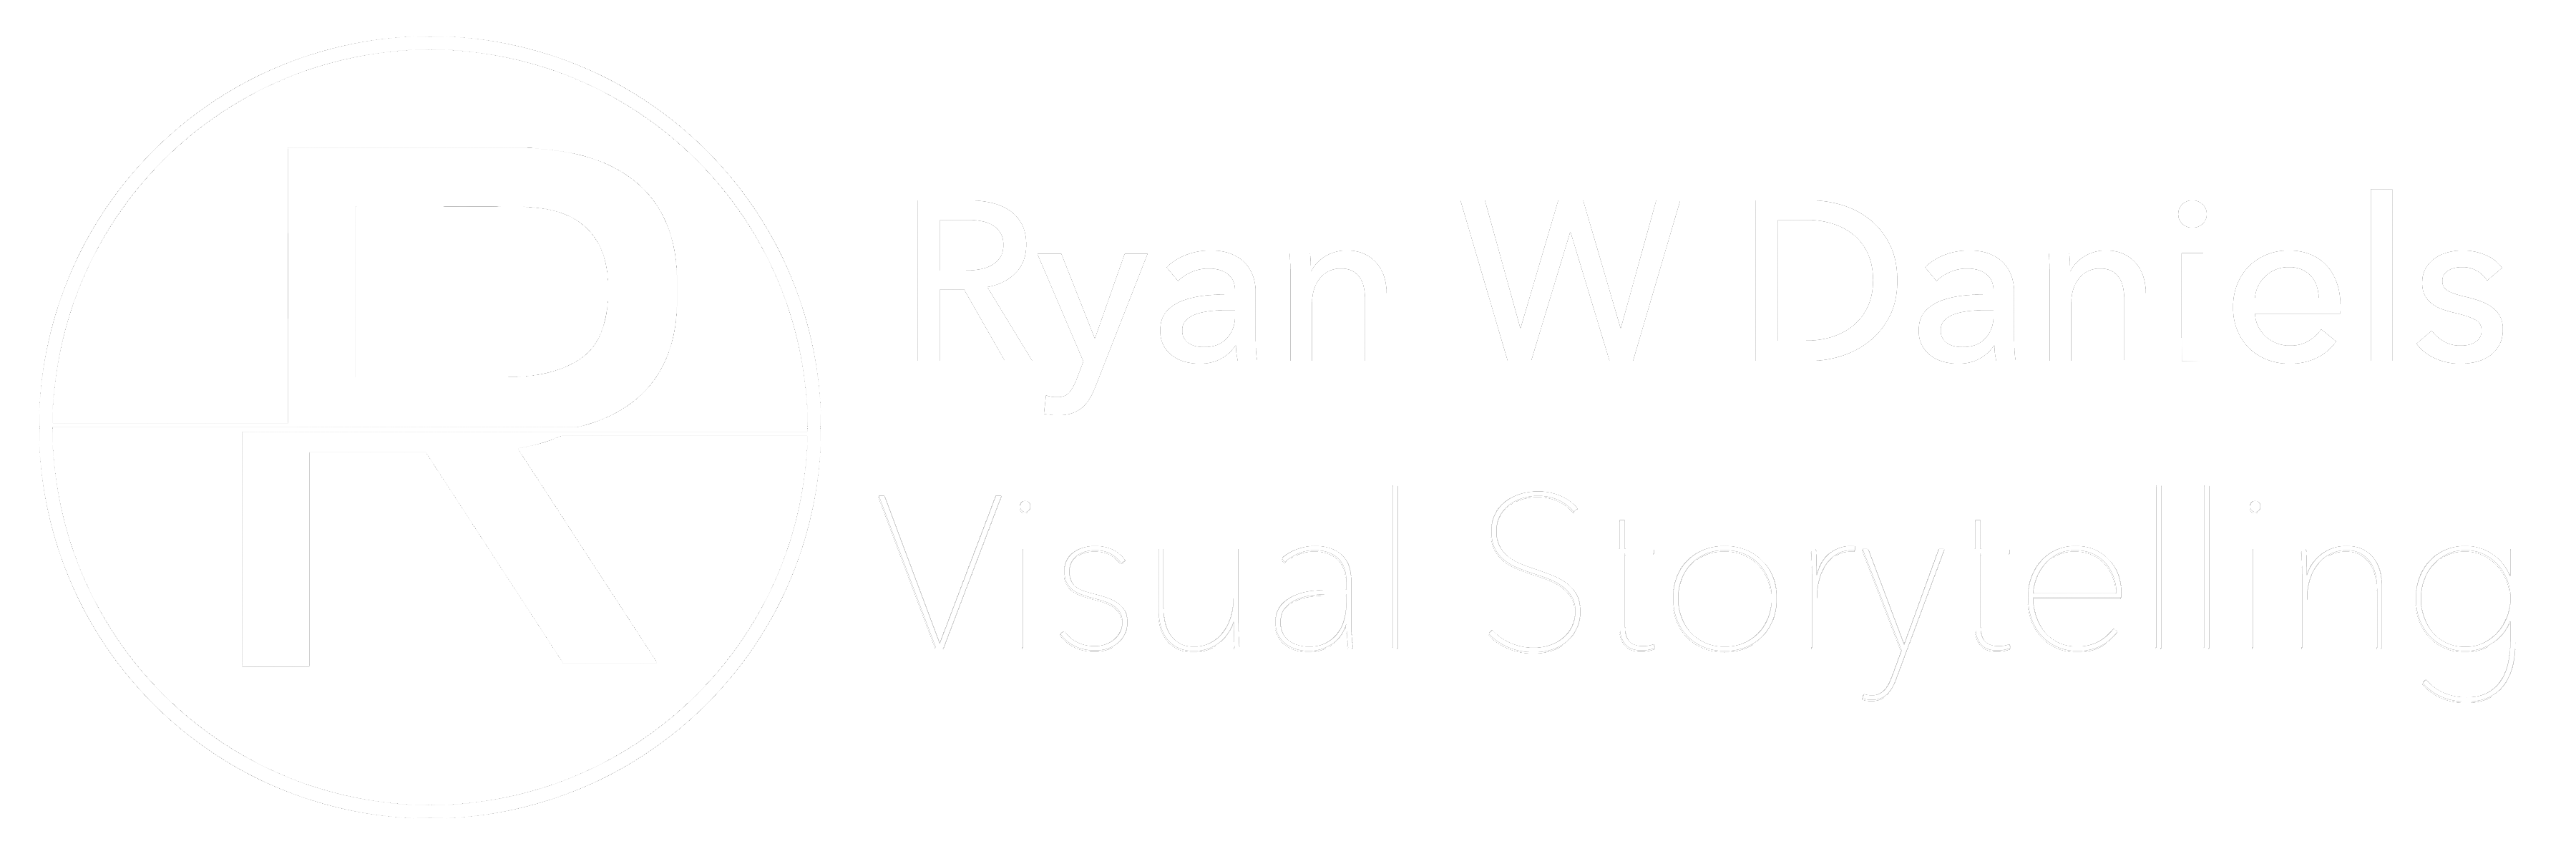 Ryan W Daniels Visual Storytelling